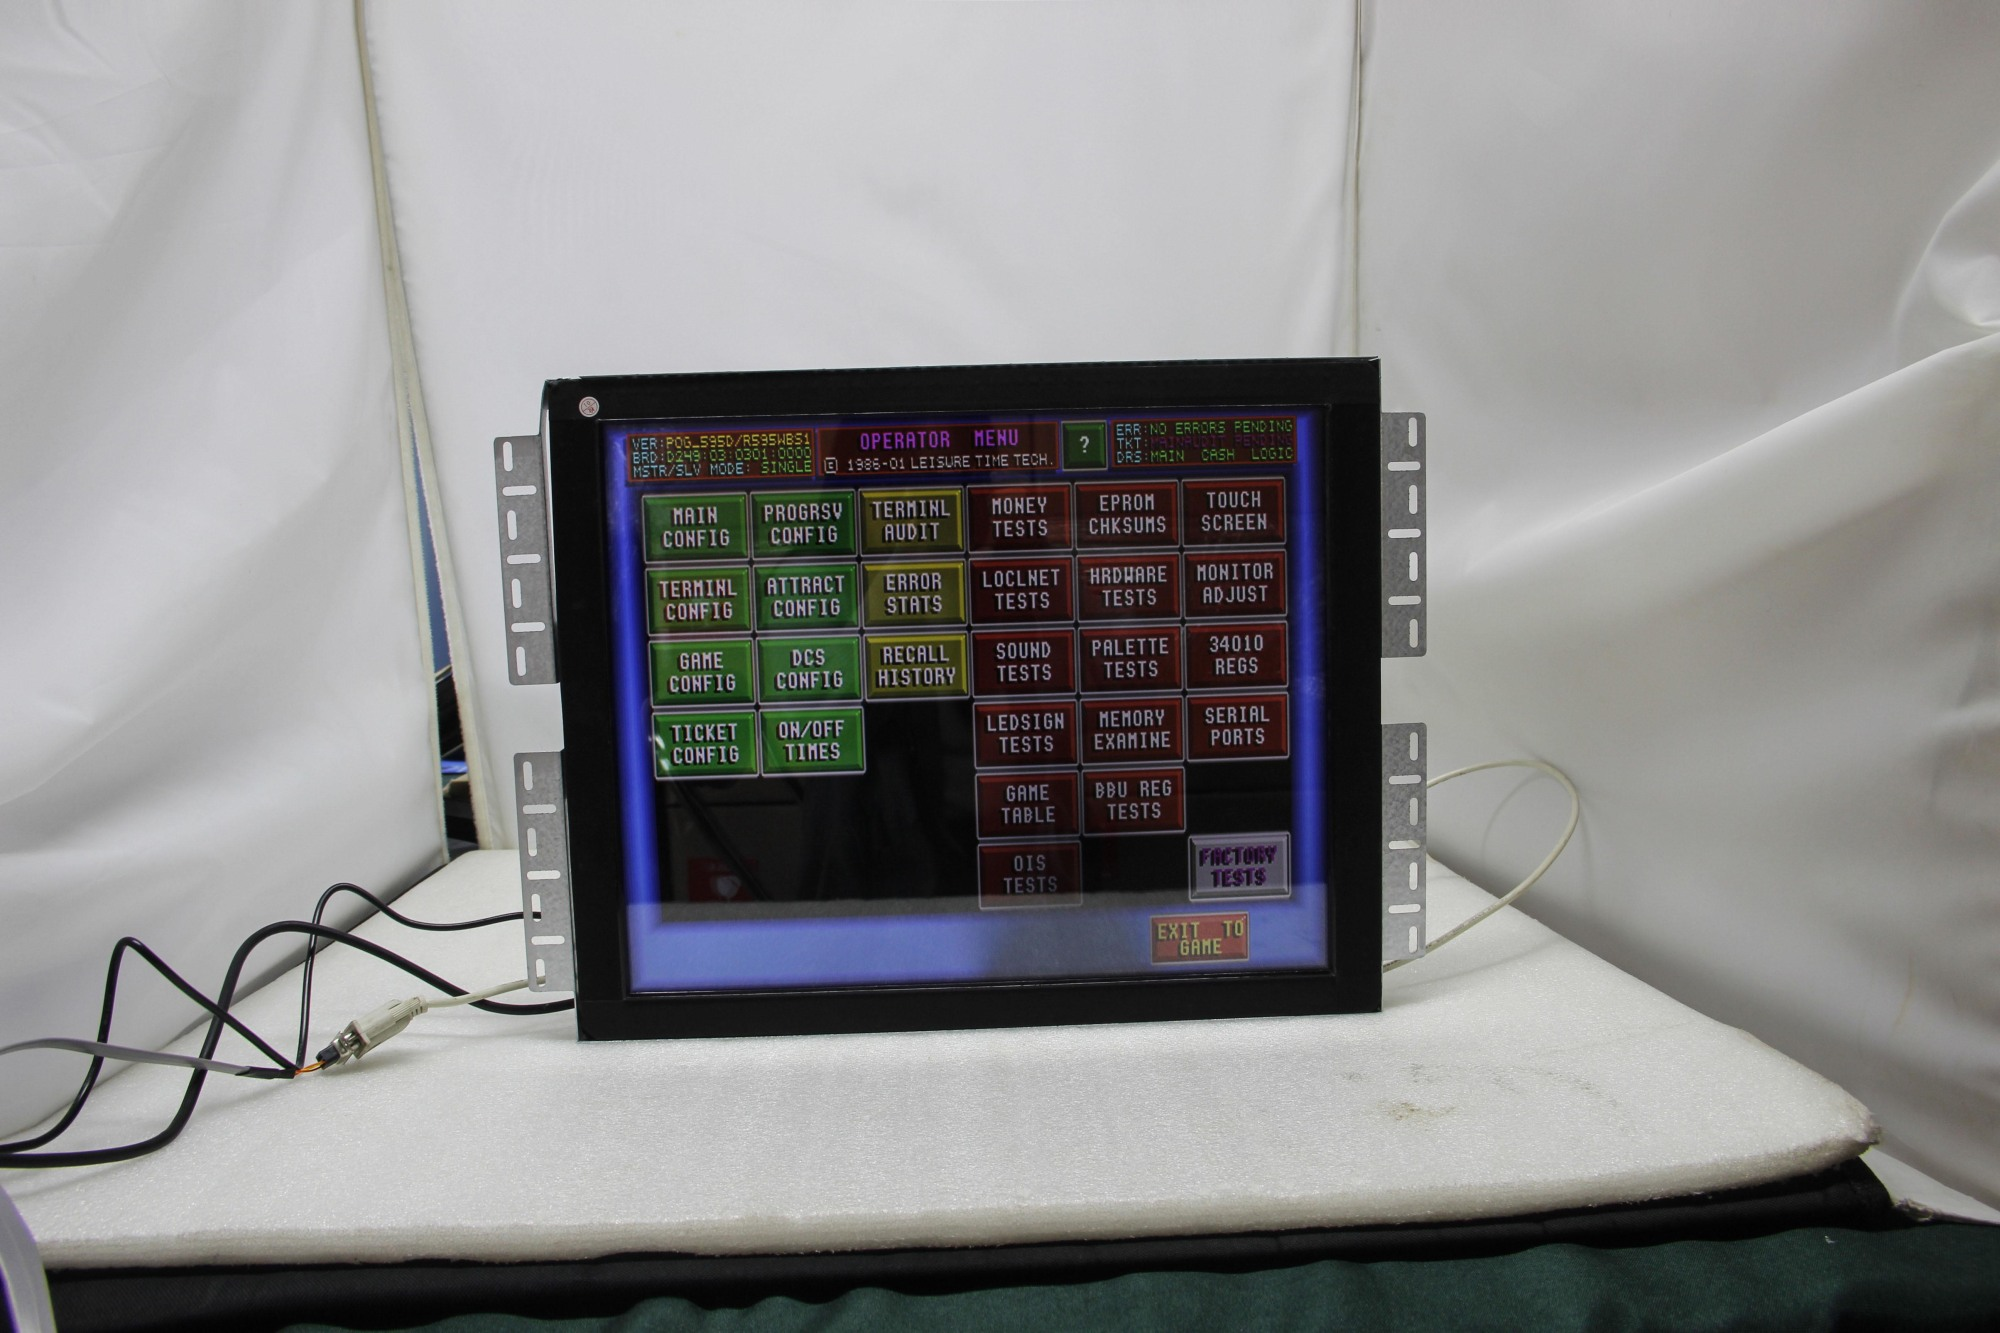 POT O Gold Game Board POG Touch Screen Monitor 19 Inch with CGA/VGA